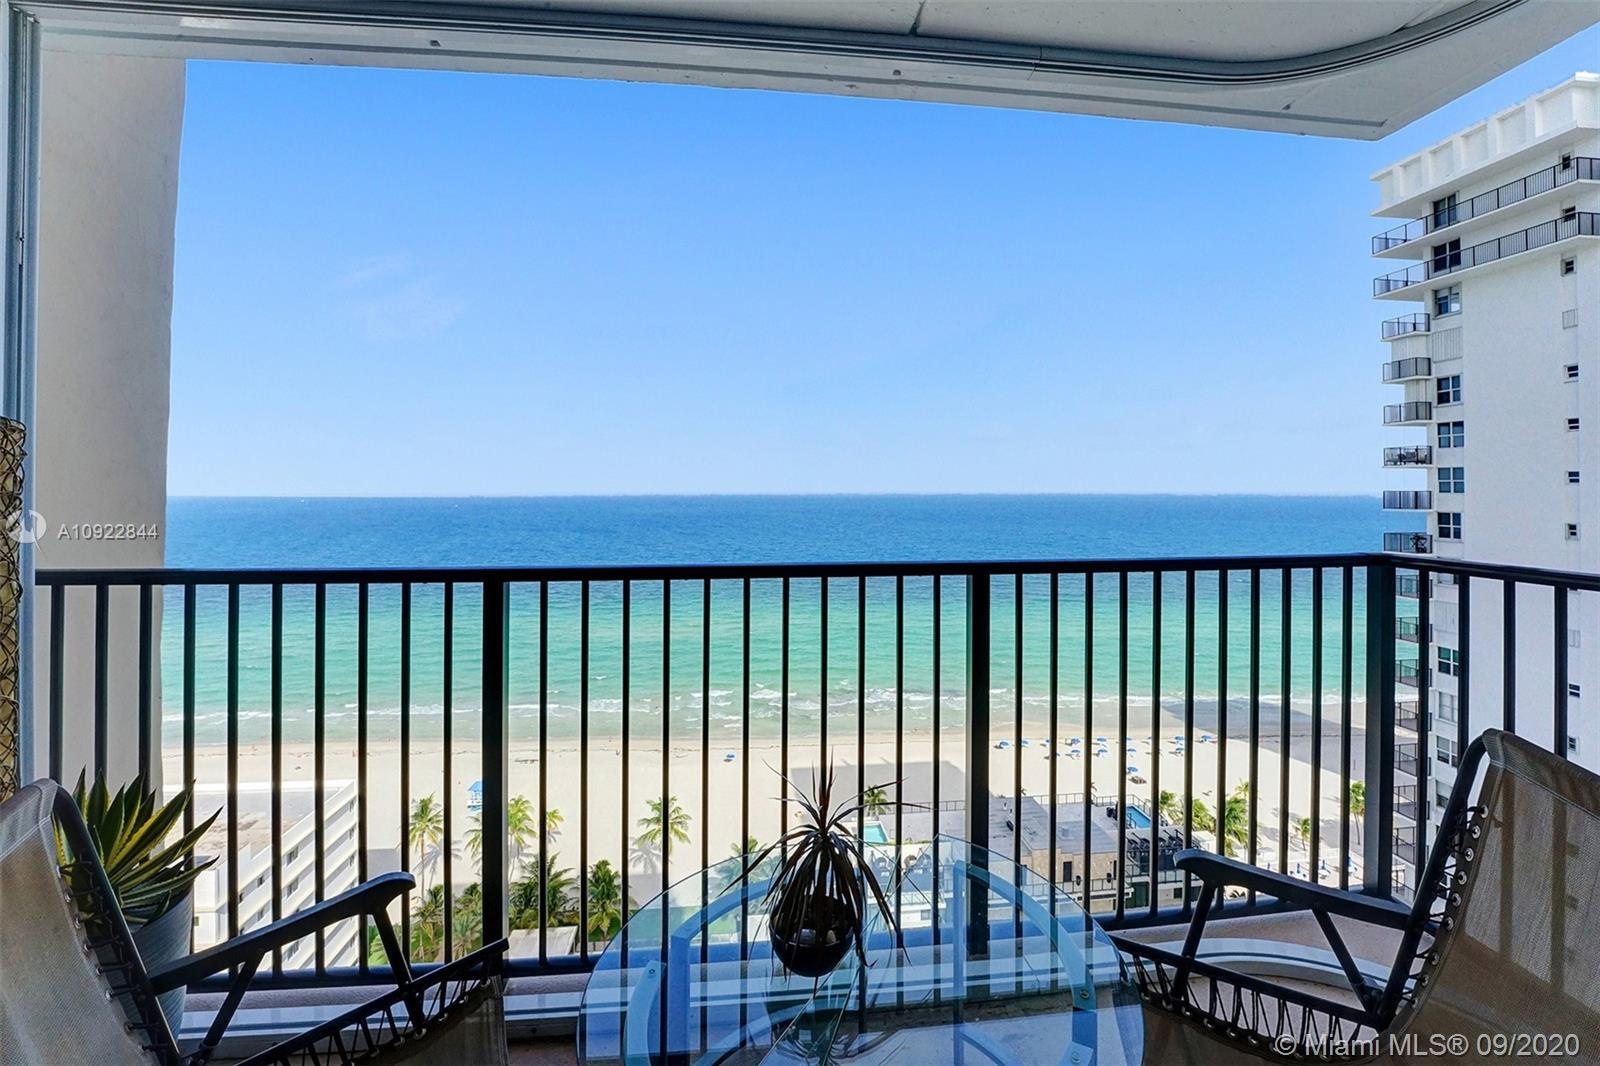 Breathaking direct ocean views as soon as you walk inside the unit and from everywhere. Large and br